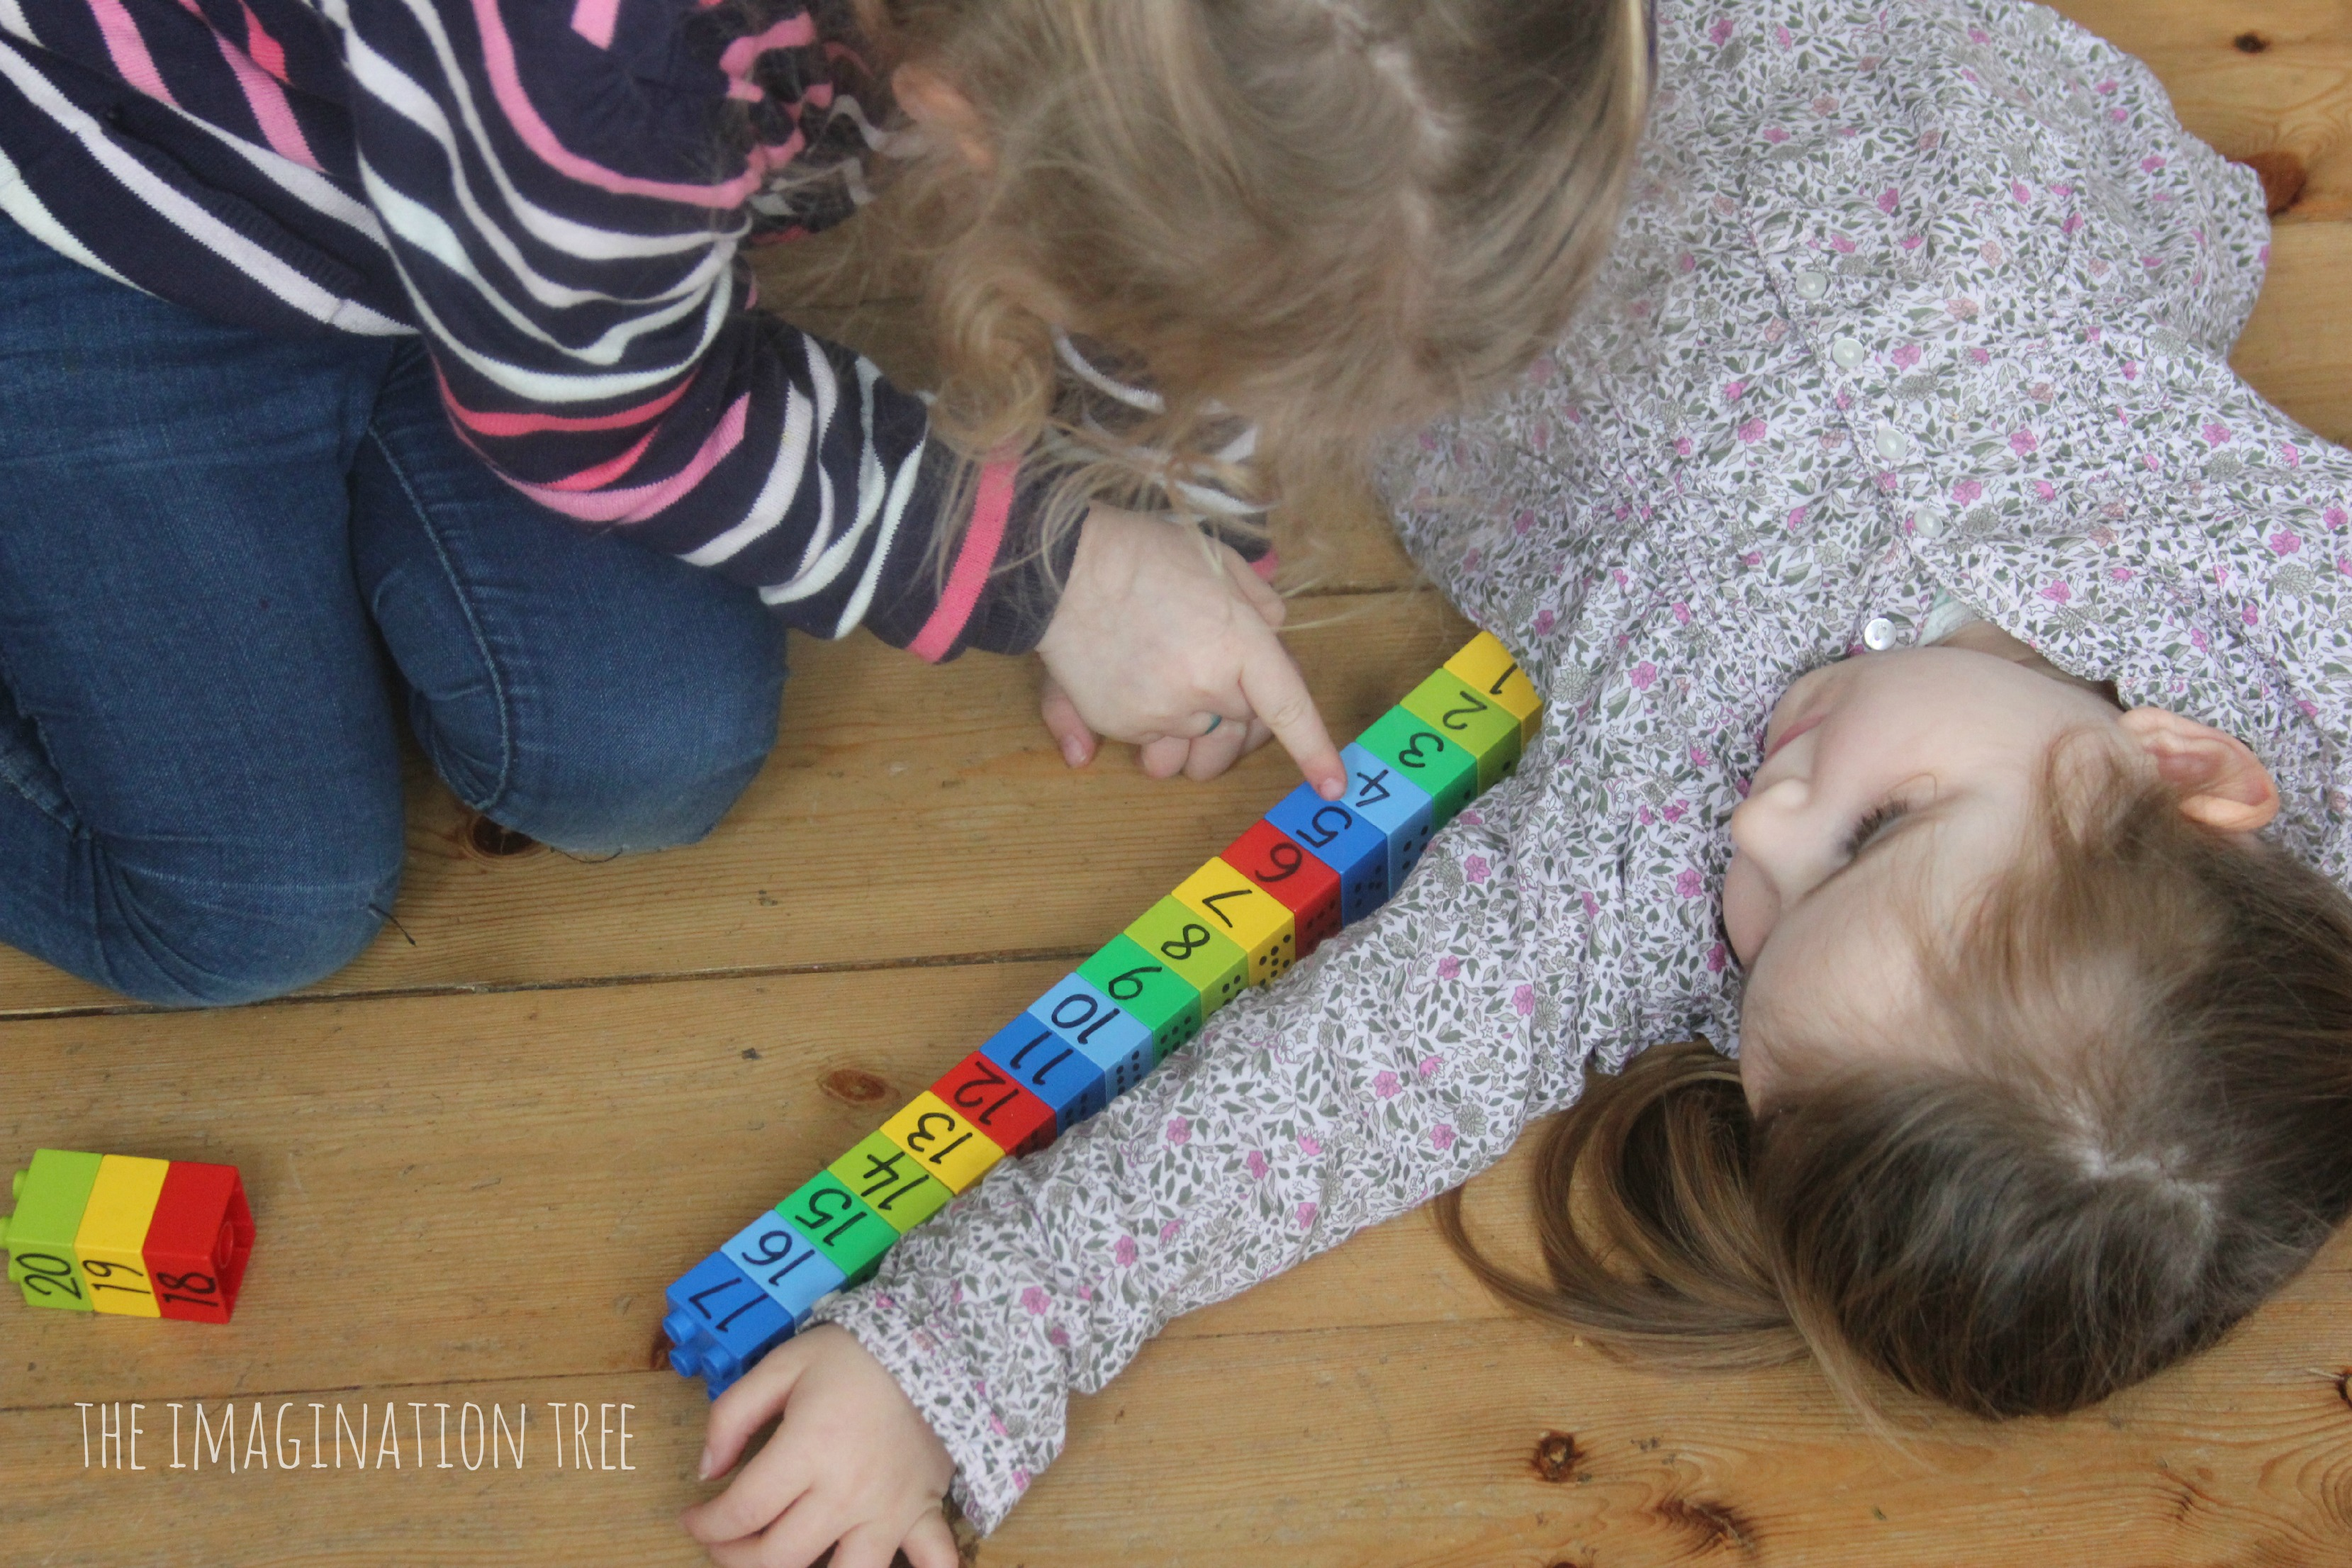 Counting and measuring with Legos shows a Lego ruler